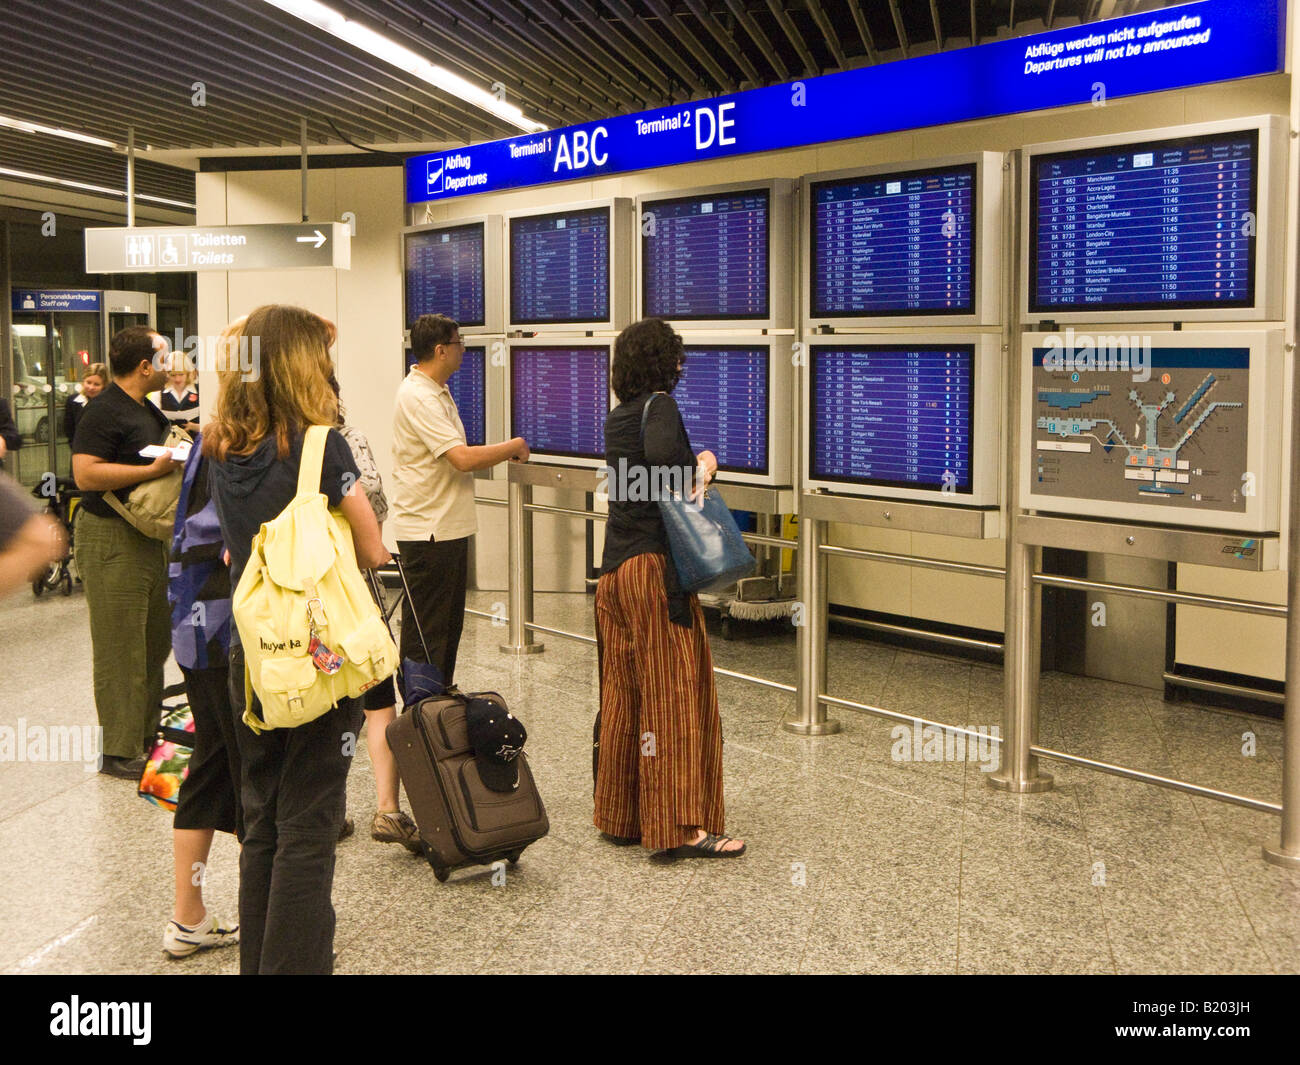 passengers looking at flight schedule video terminals, Frankfurt airport, Germany - Stock Image